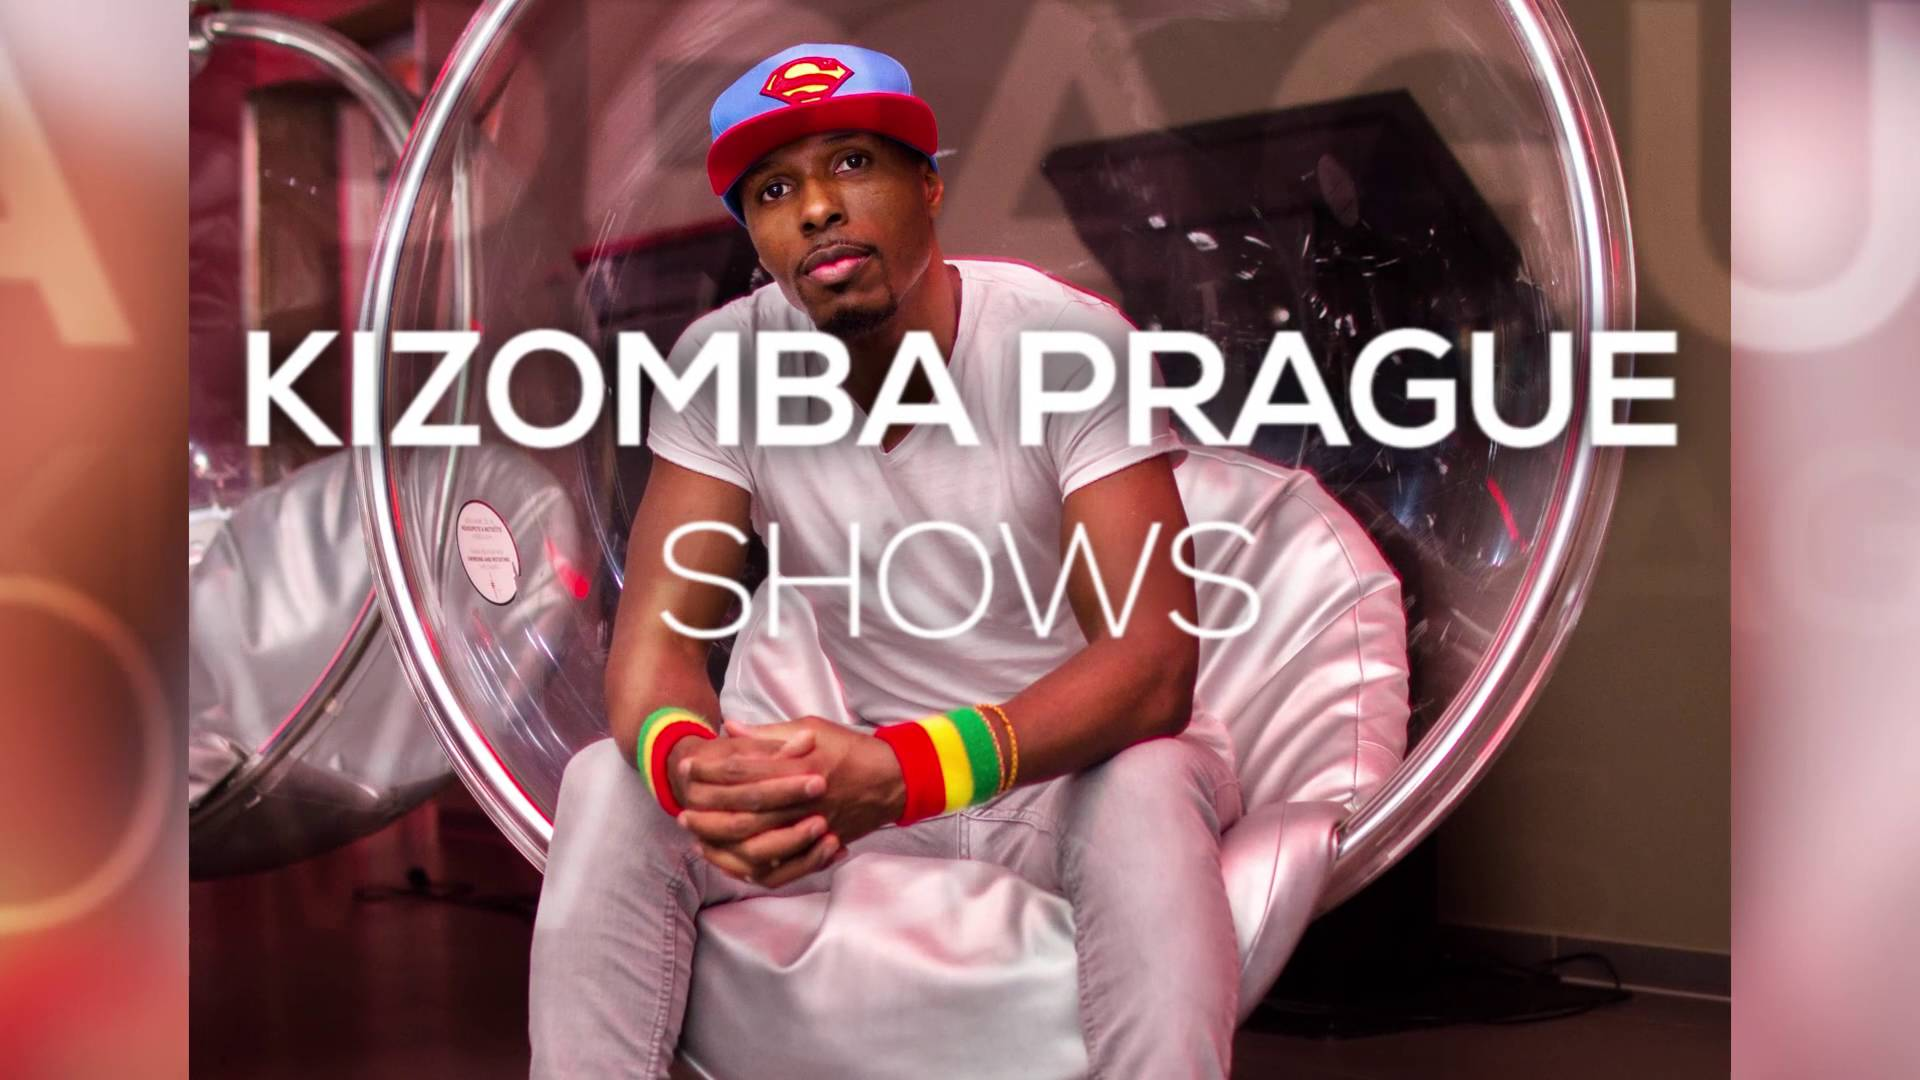 Kizomba & Ghetto zouk weekly party in Tower Park Prague by Vitor Mendes :: Kizomba Prague